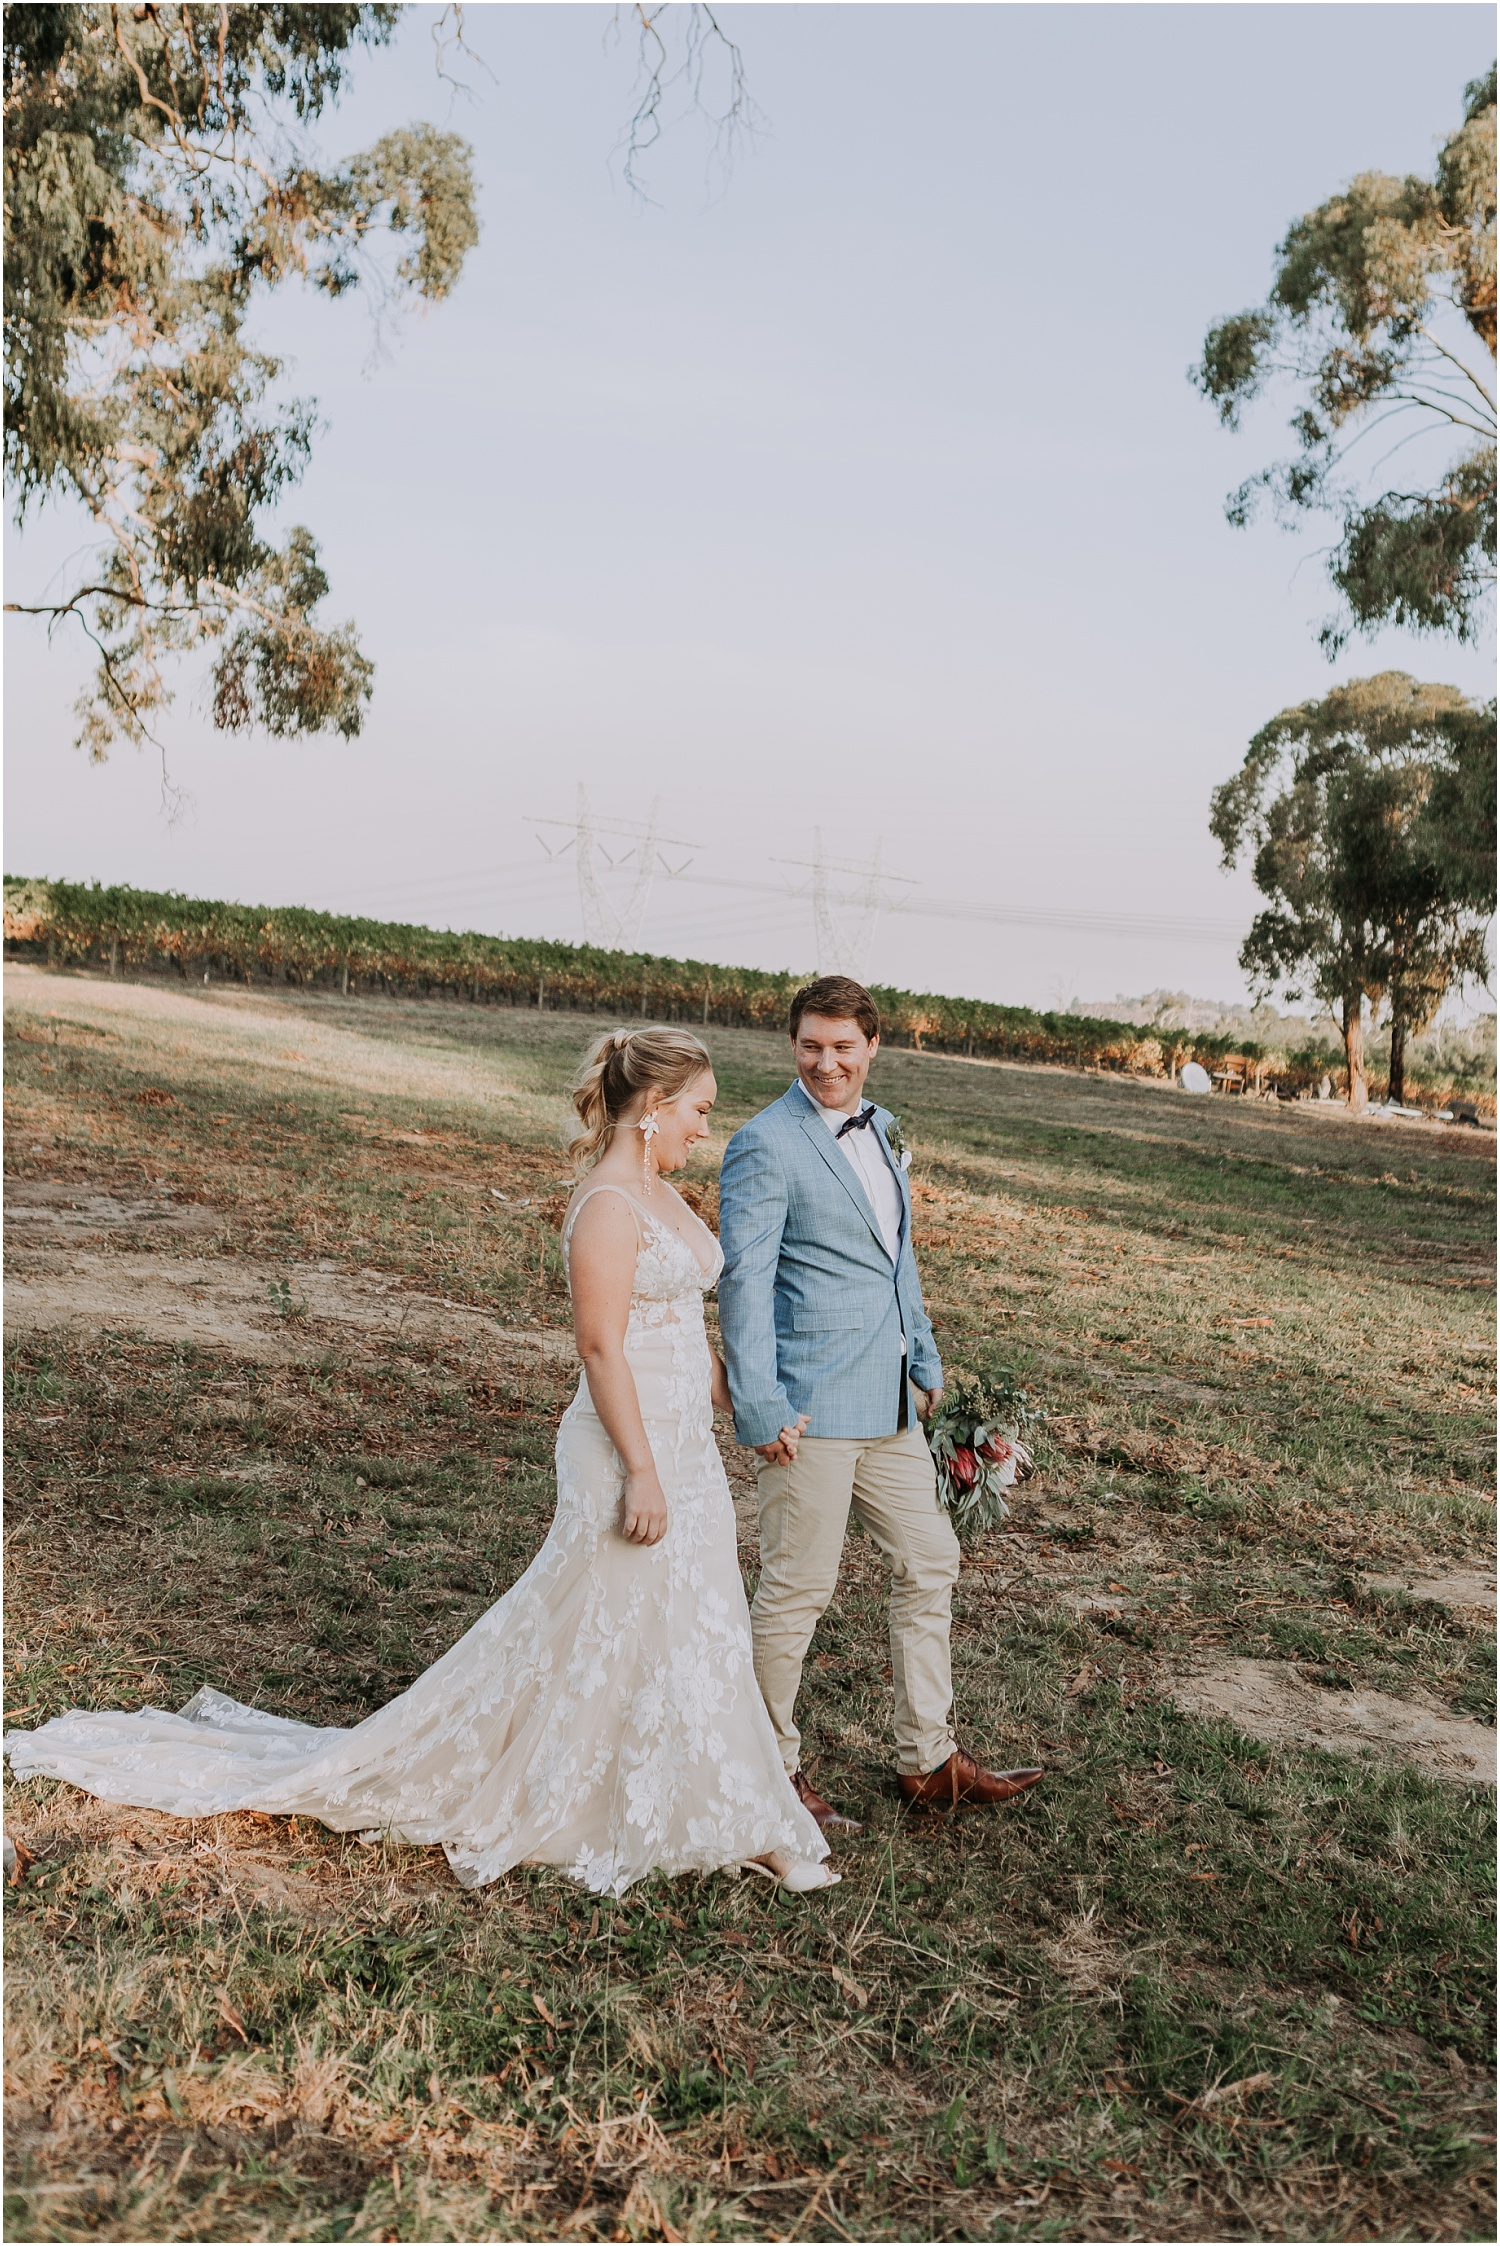 Lacey and Warwick's Yarra Valley winery wedding at Vines Helens Hill._0074.jpg